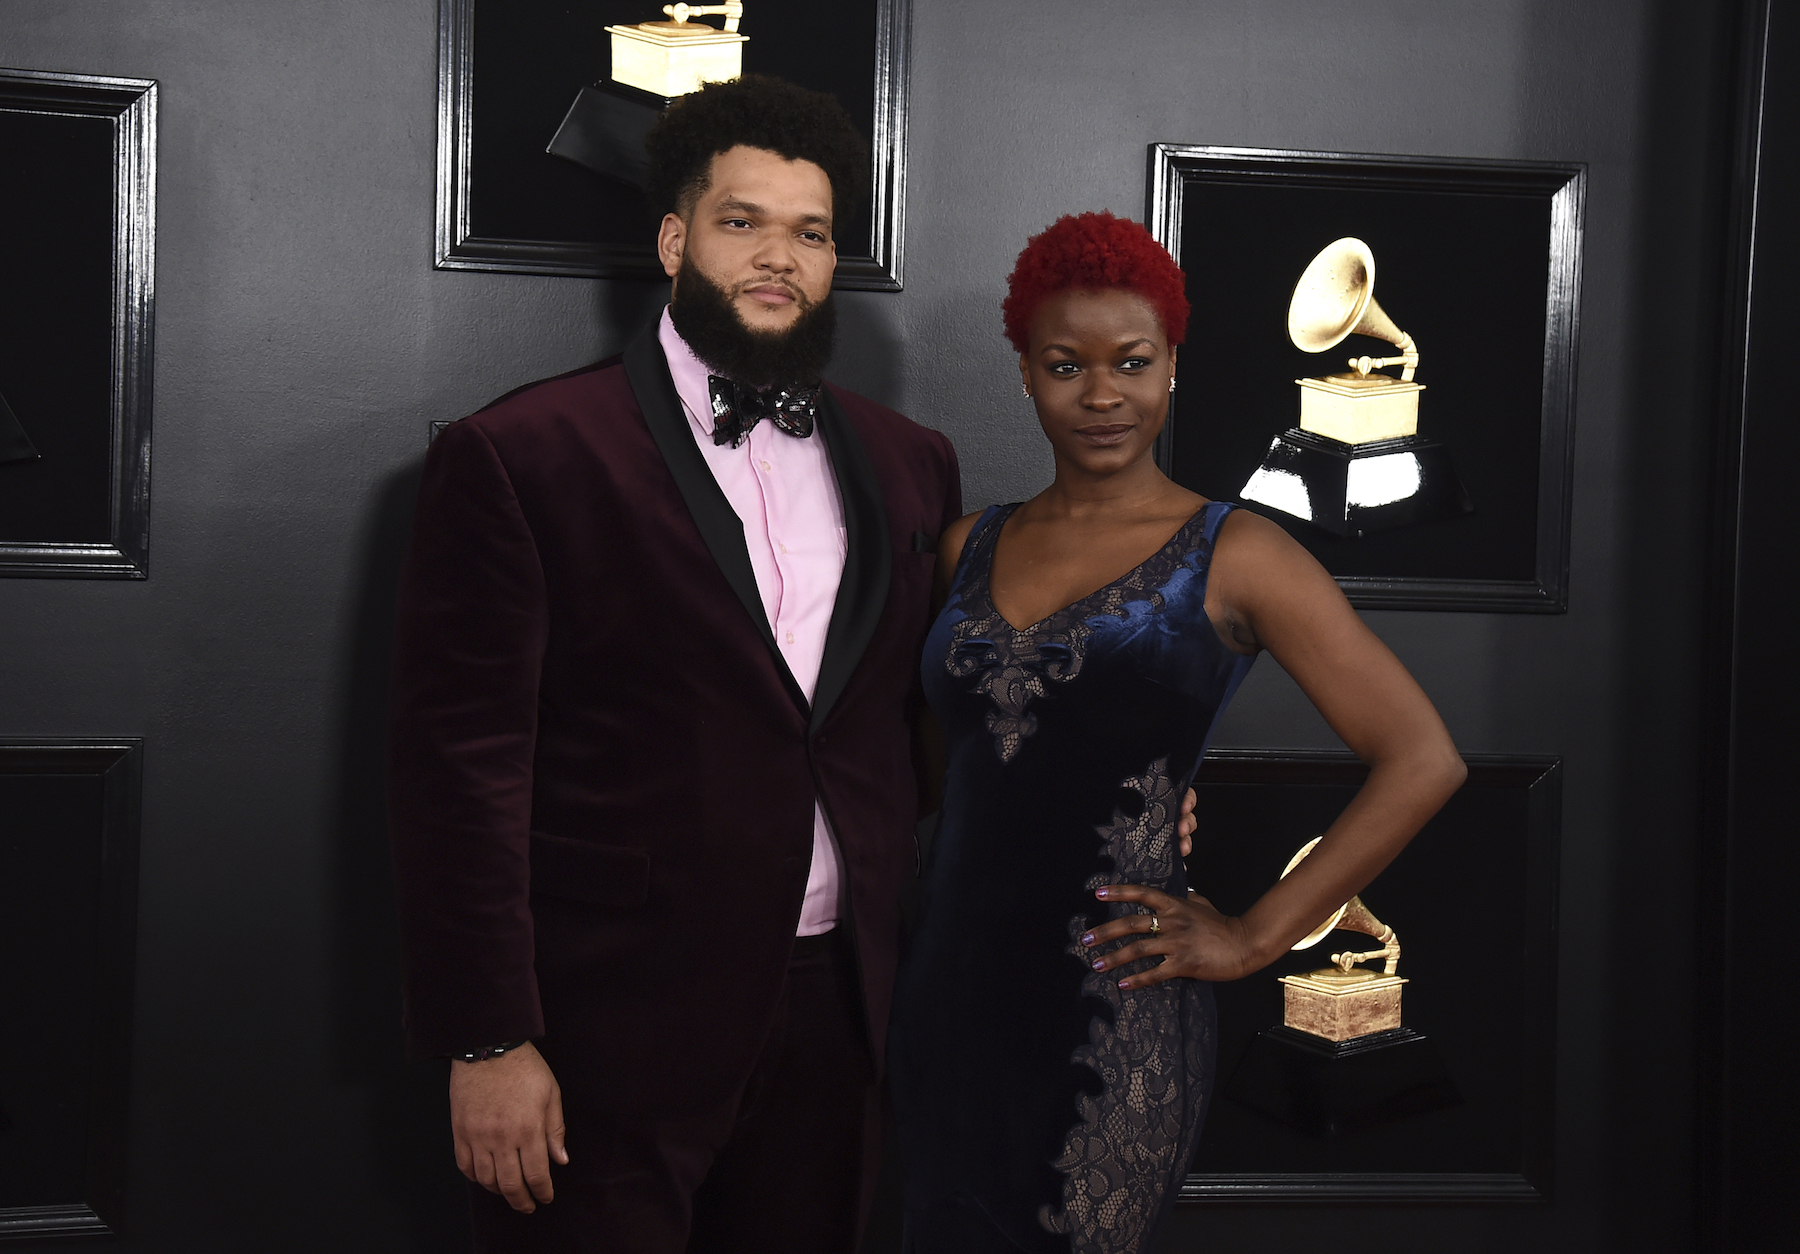 <div class='meta'><div class='origin-logo' data-origin='AP'></div><span class='caption-text' data-credit='Jordan Strauss/Invision/AP'>Kris Johnson, left, and Lulu Fall arrive at the 61st annual Grammy Awards at the Staples Center on Sunday, Feb. 10, 2019, in Los Angeles.</span></div>